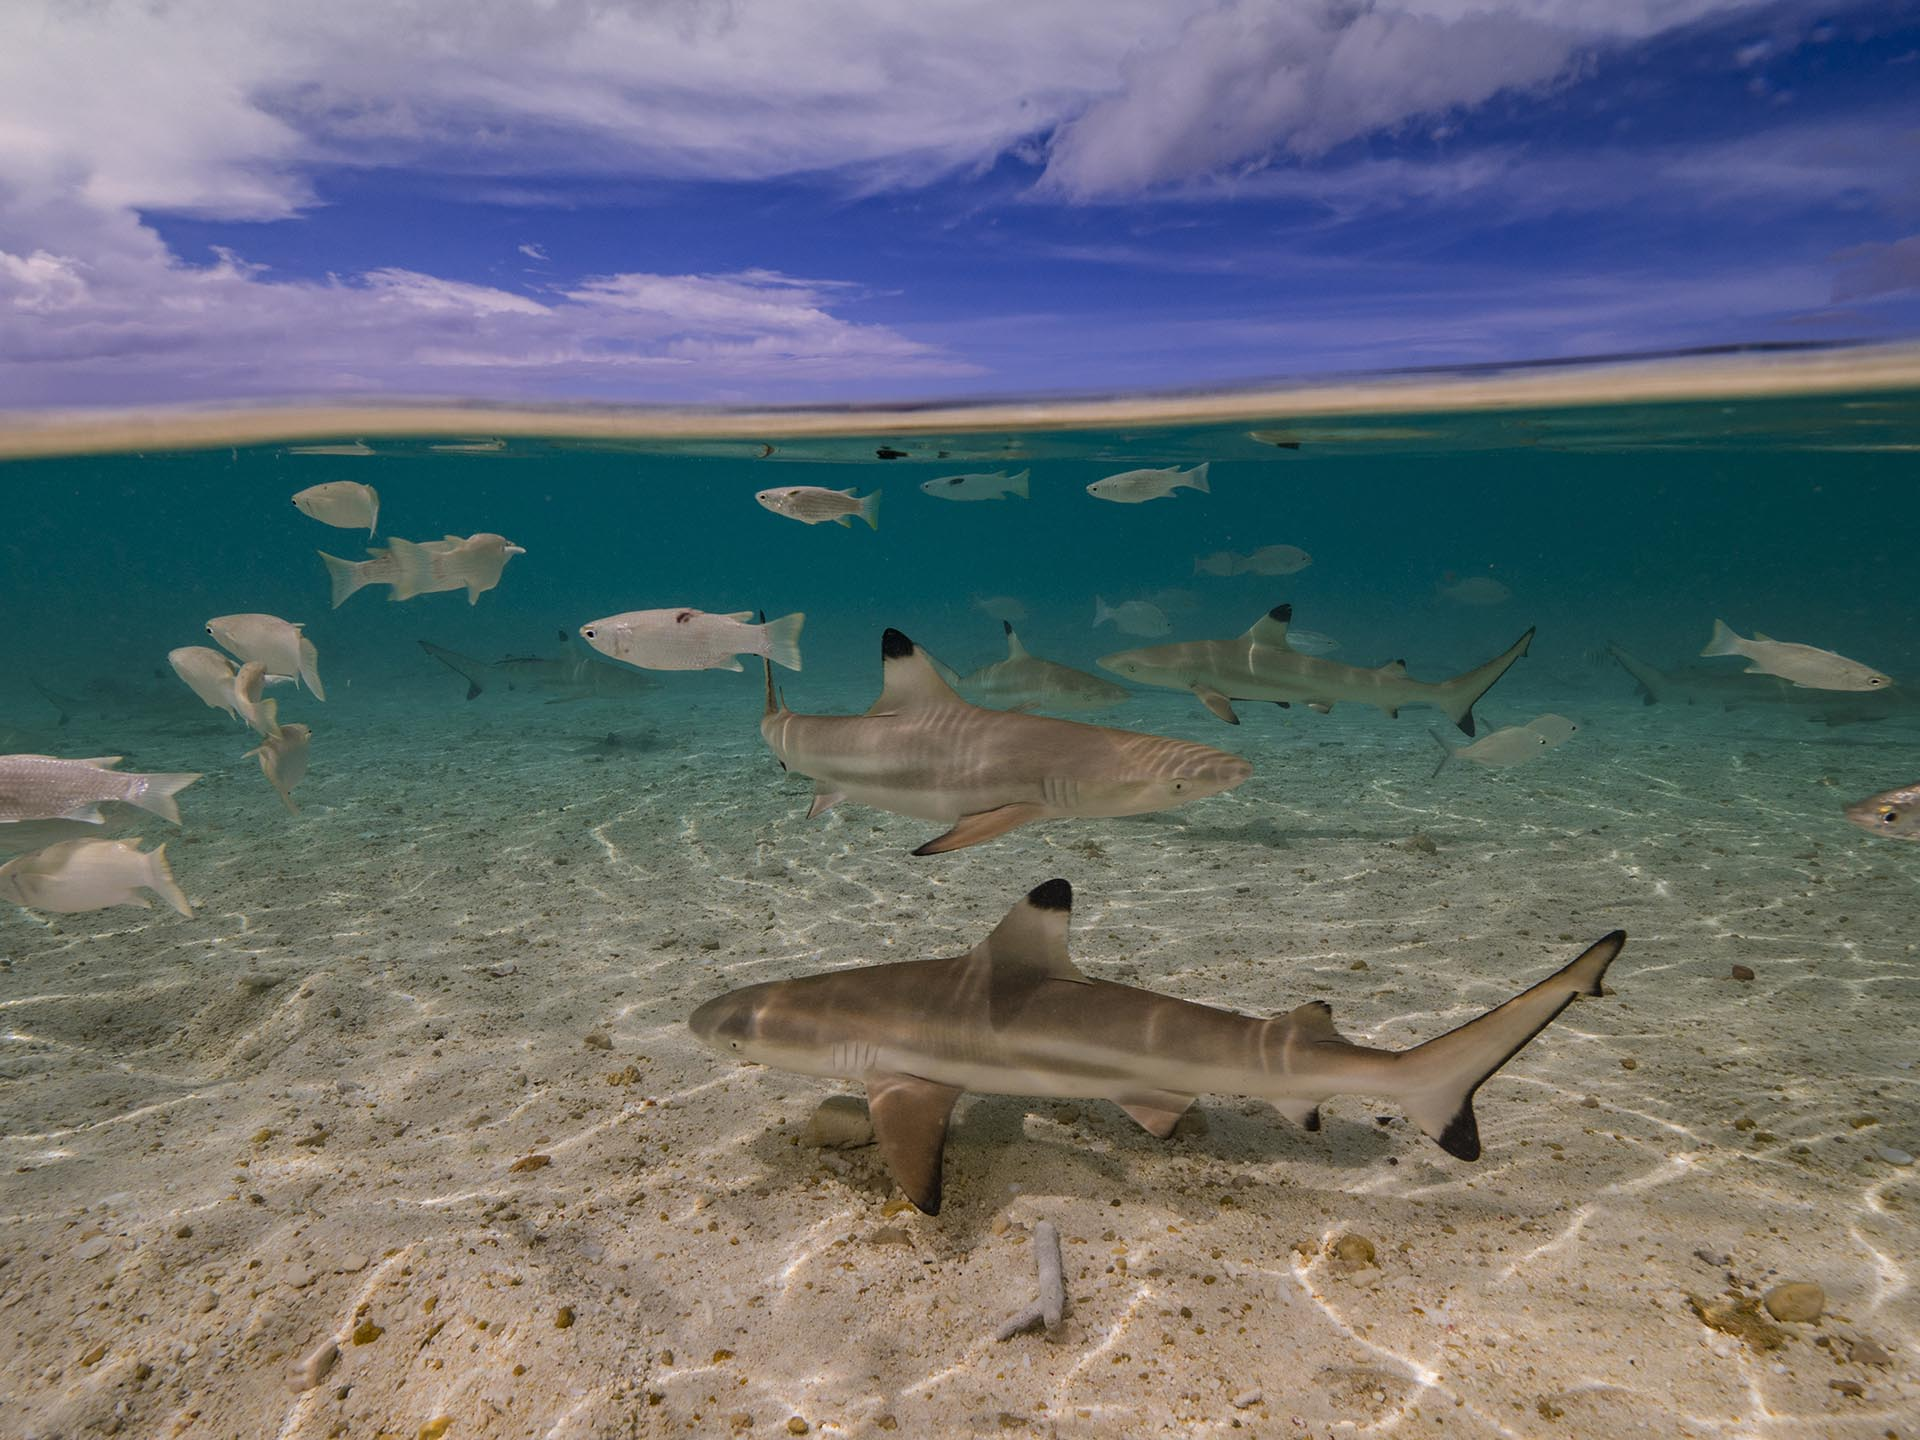 Black tip reef sharks in shallow water